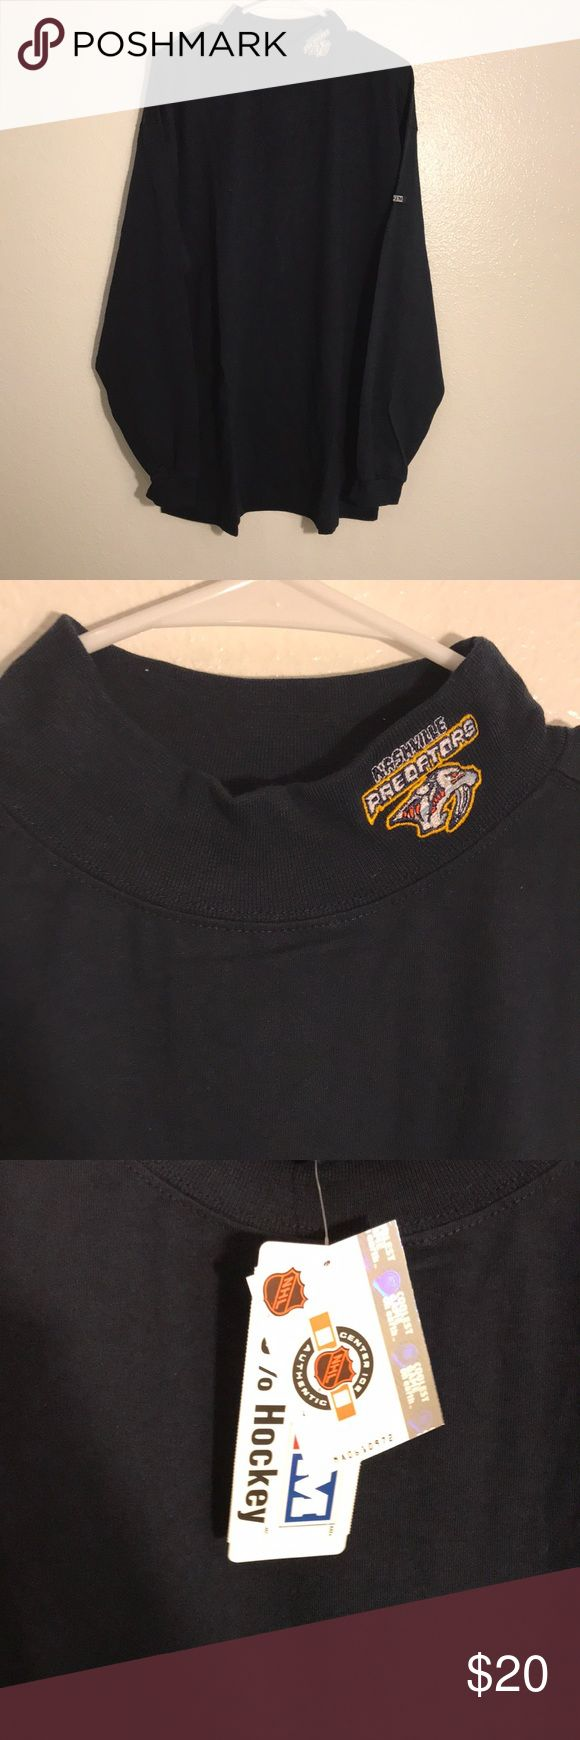 CCM Nashville Predators TurtleNeck Long Sleeve XL CCM Nashville Predators TurtleNeck Long Sleeve Size XL, With Tags, Brand New, Never Worn or Used, 🎄WILL SHIP IN ONE DAY🎄All bundles of 2 or more receive 20% off. Closet full of new, used and vintage Vans, Skate and surf companies, jewelry, phone cases, shoes and more. CCM Shirts Tees - Long Sleeve